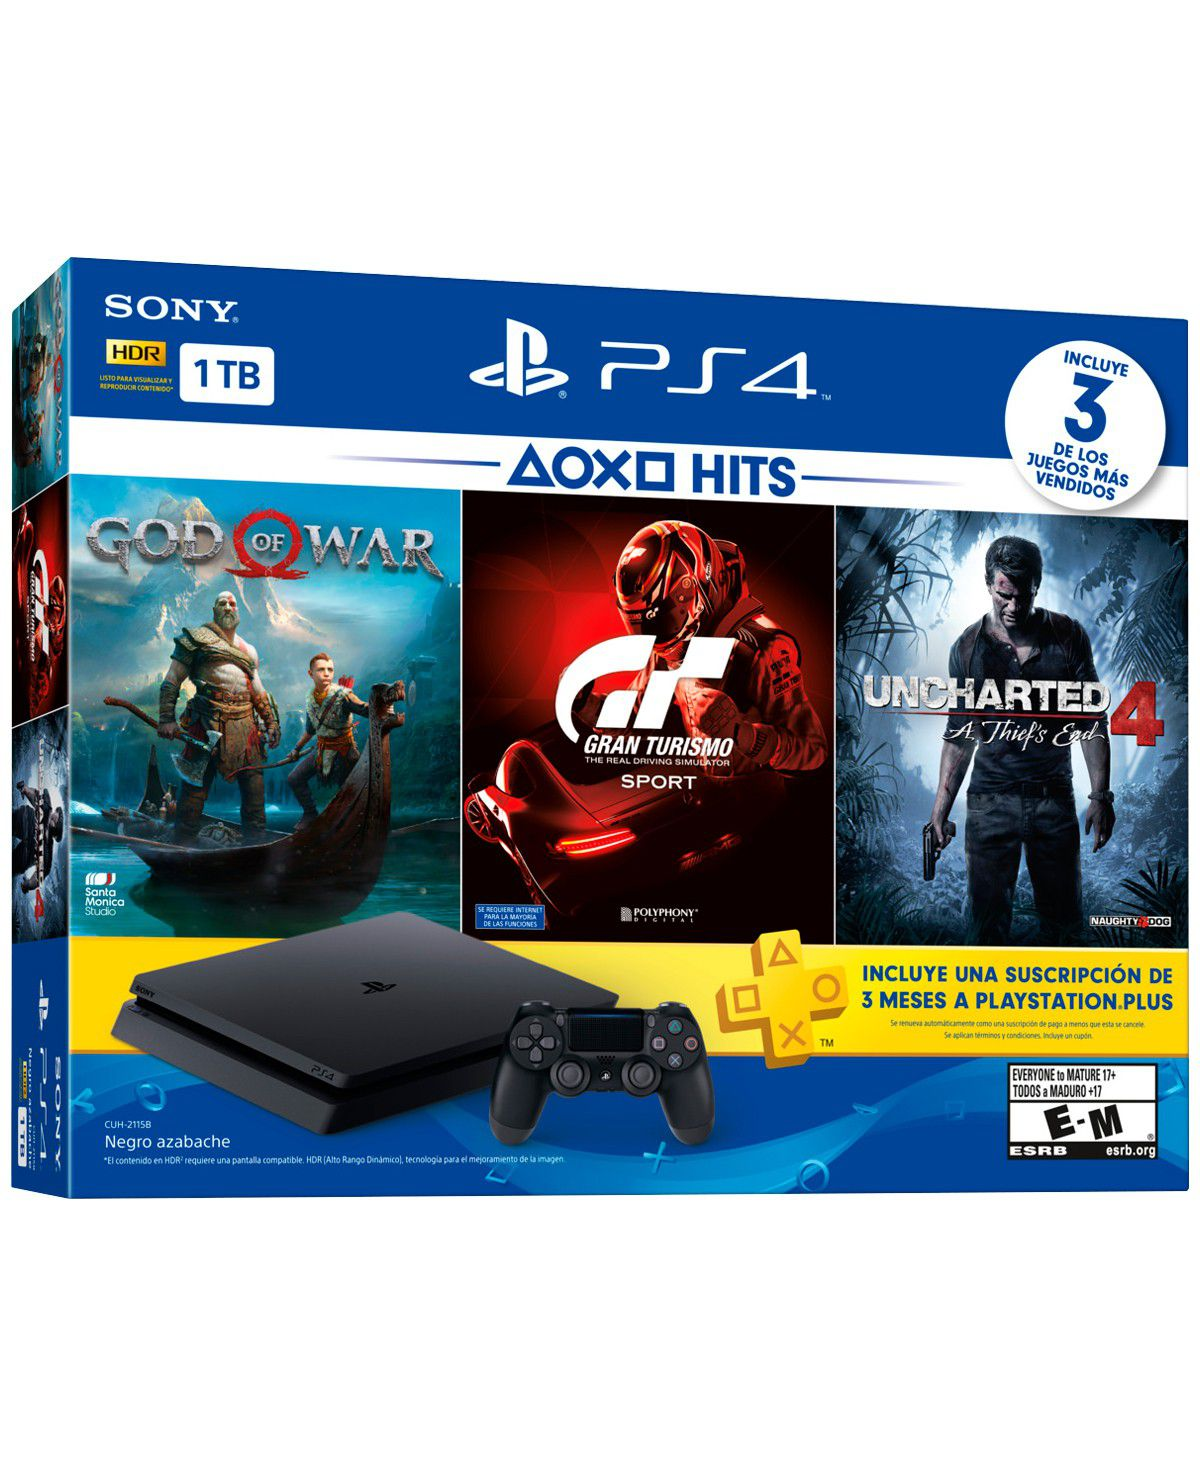 Playstation 4 Slim - 1 Terabyte + 3 Jogos (God of War + Gran Turismo + Uncharted 4) (2 Controles)